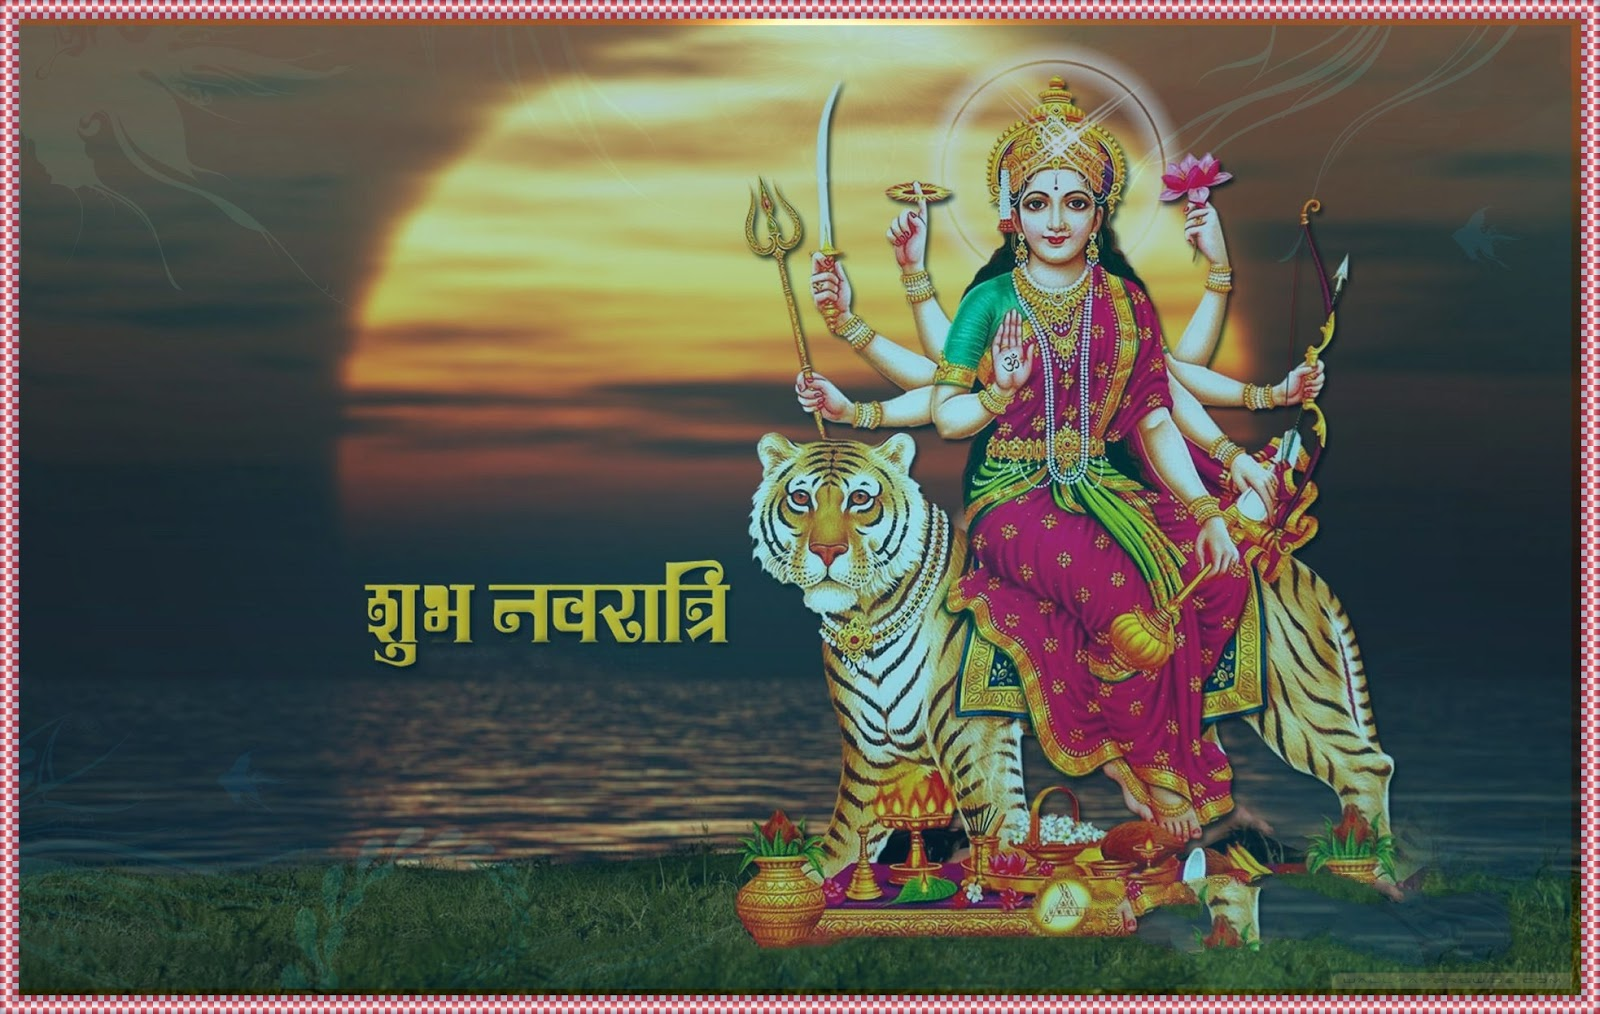 Wallpaper download navratri - In This Festival Friends Relatives And Family Members Send Wishes To Their Love One And Here We Are Providing The Latest 2015 Navrtri Hd Wallpapers And